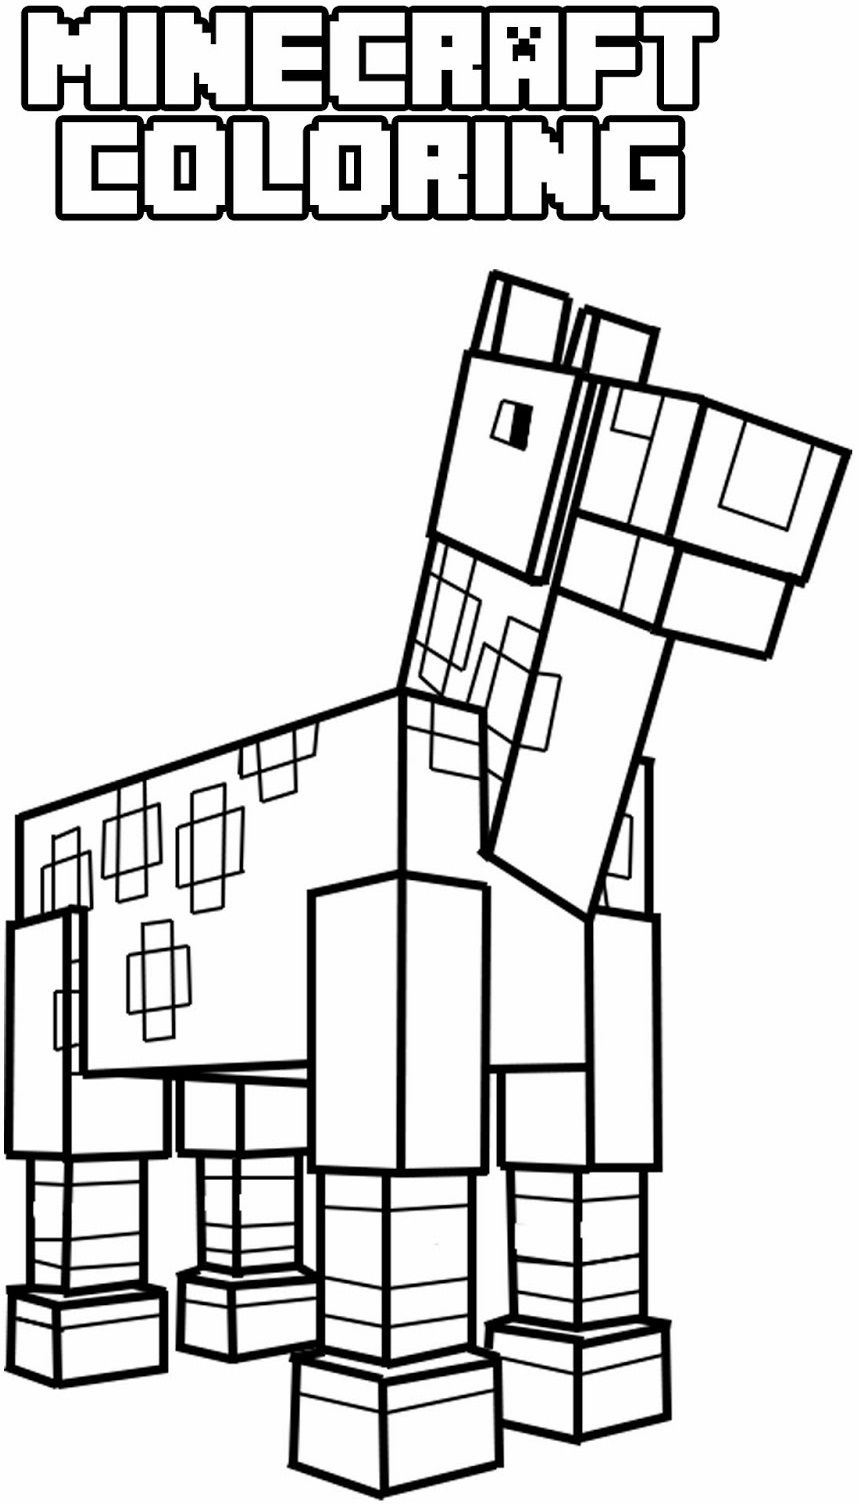 easy minecraft coloring pages minecraft pickaxe drawing at getdrawings free download easy pages minecraft coloring